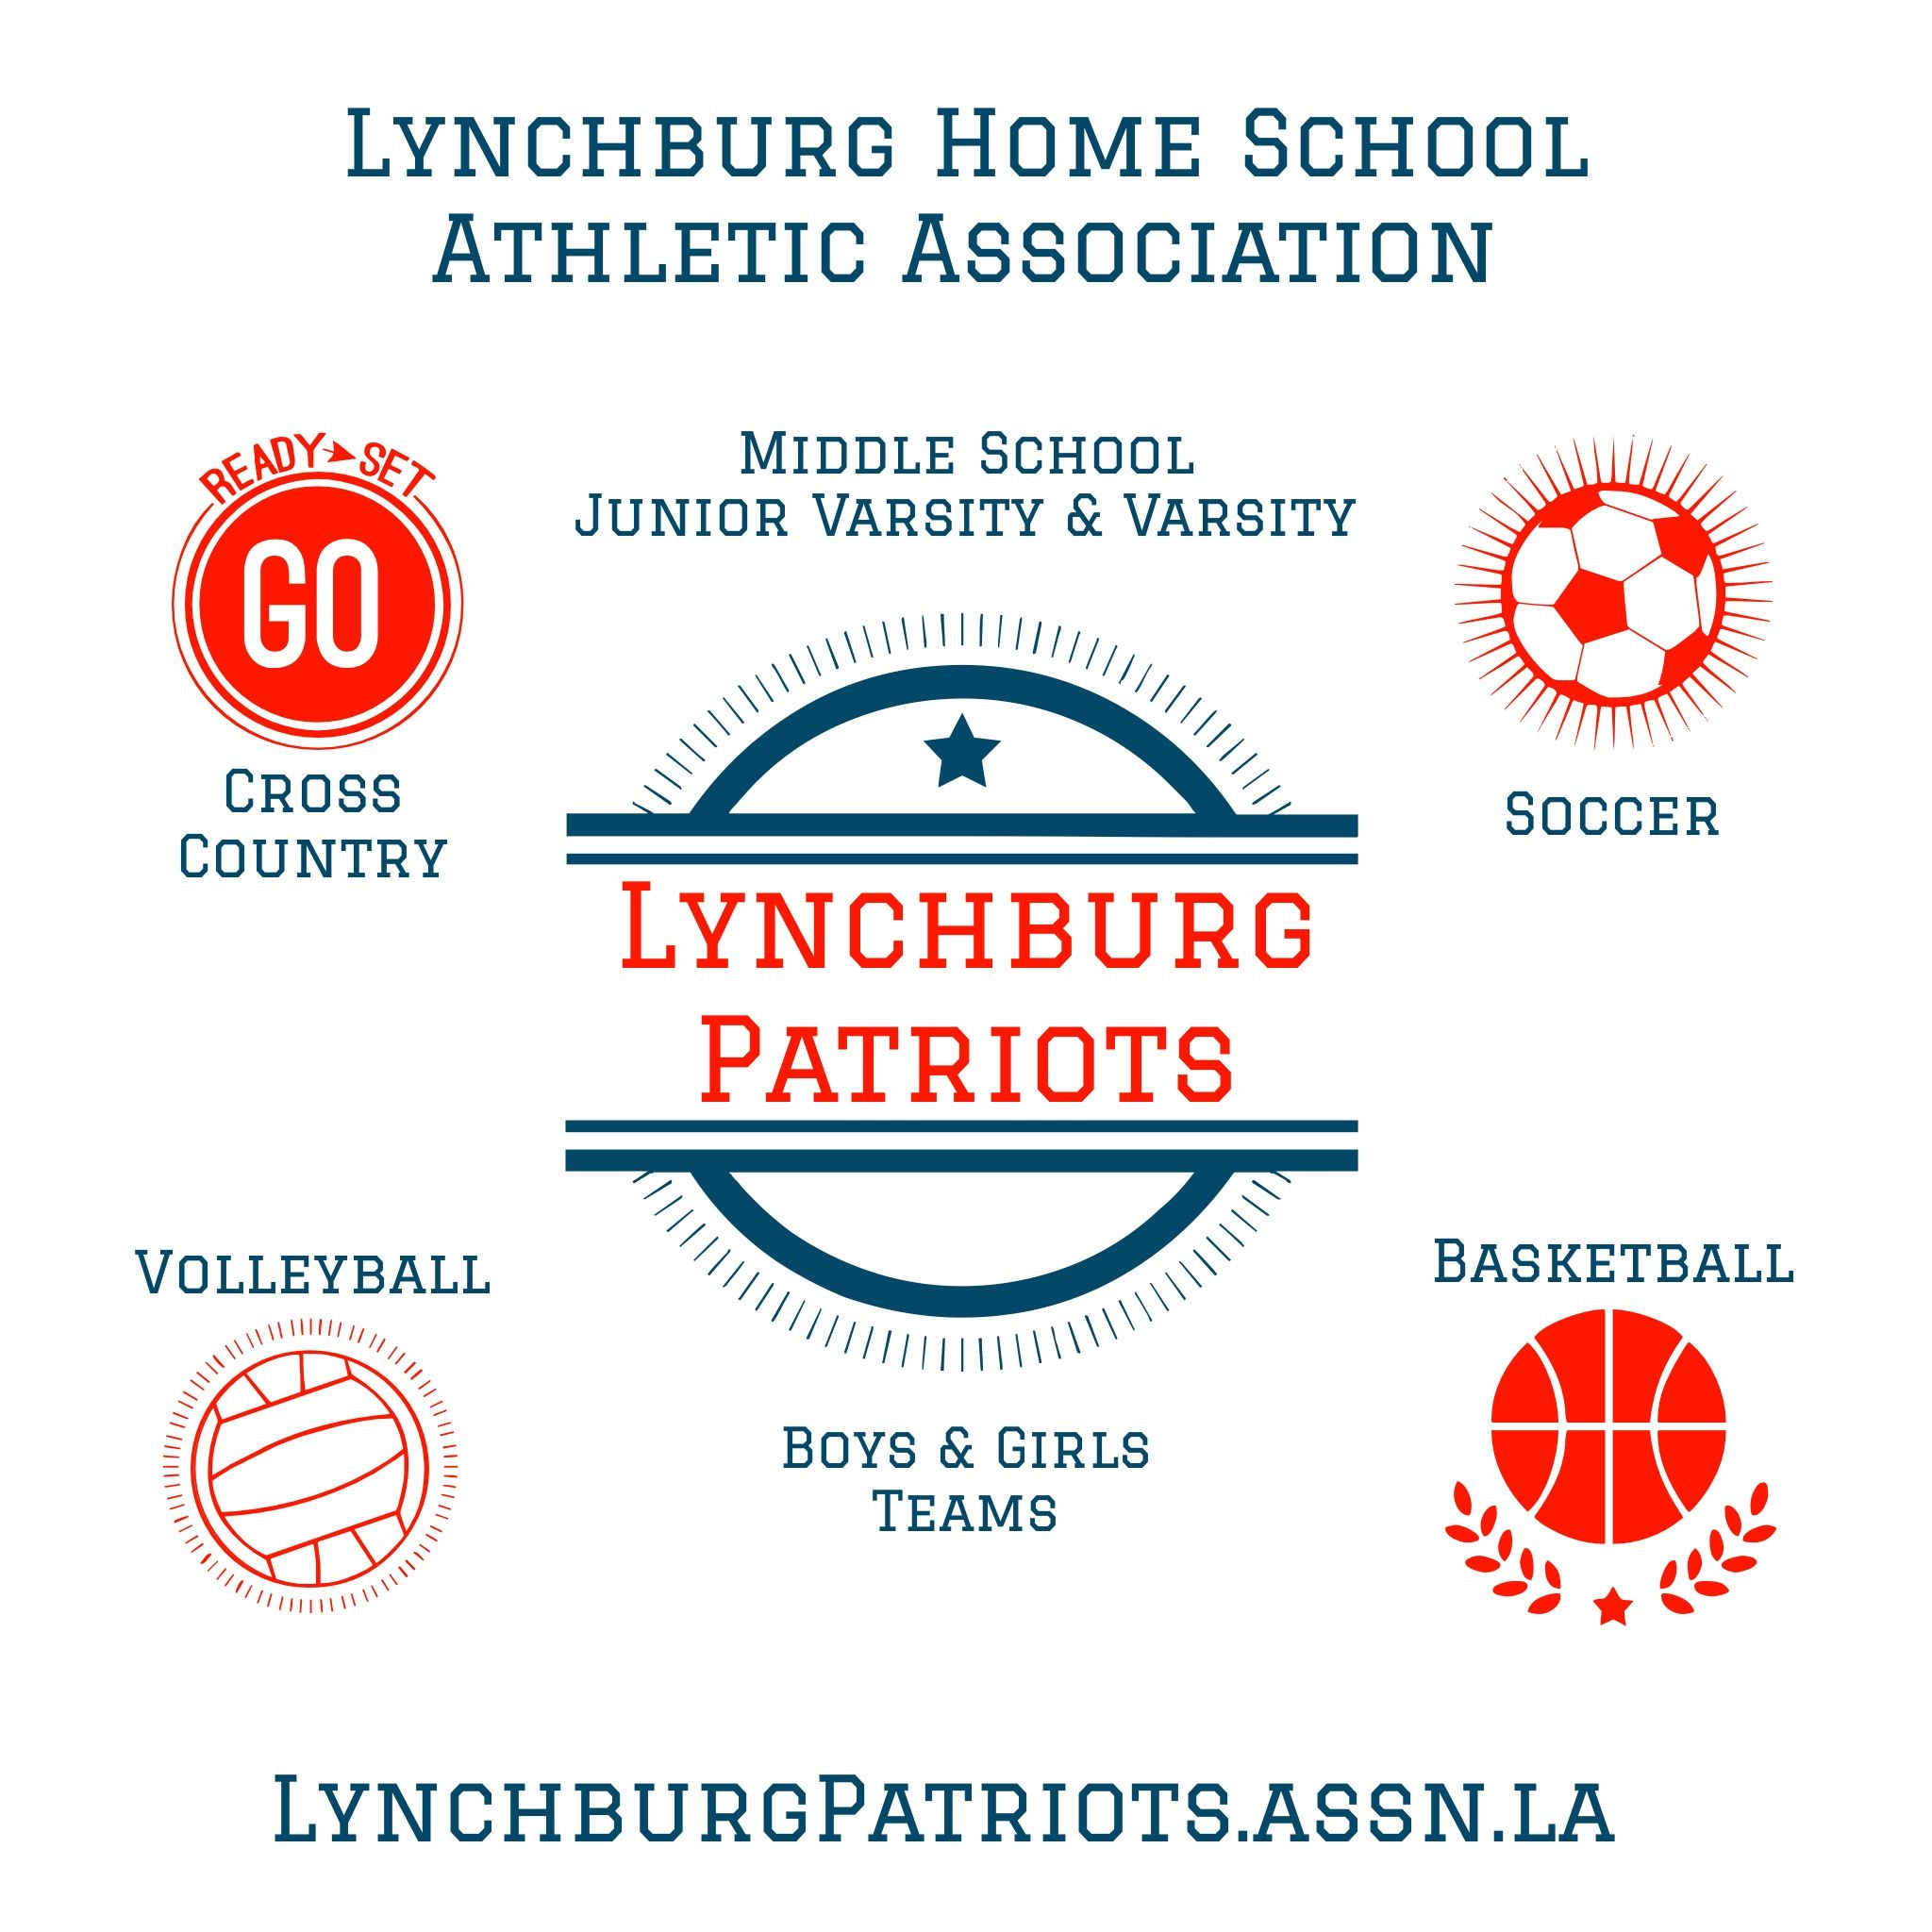 Lynchburg Home School Athletic Association Lhsaa Offers Competitive Homeschool Sports For Girls And Boys In Homeschool School How To Start Homeschooling